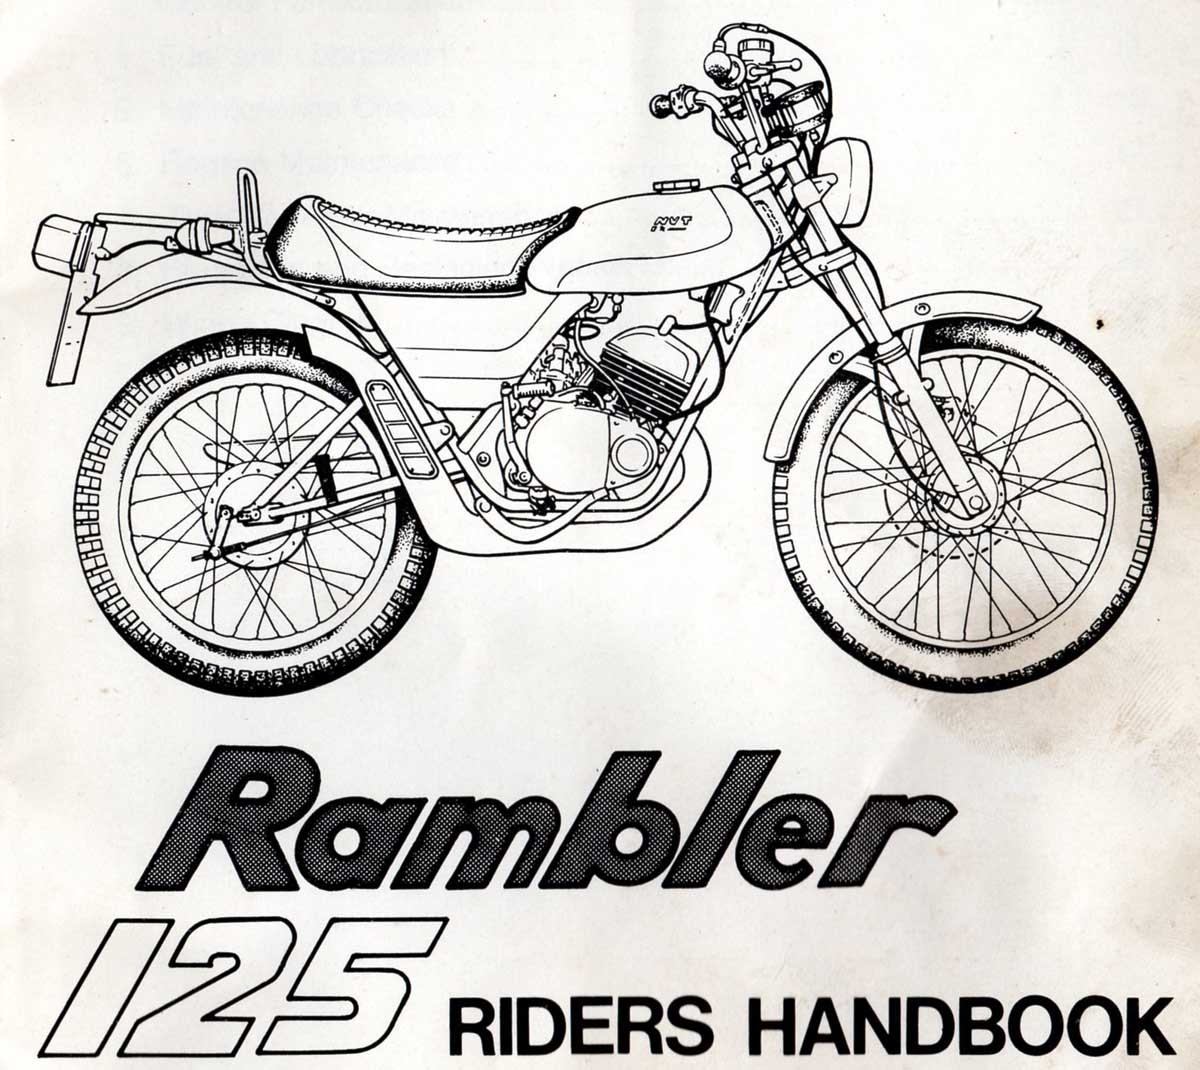 small resolution of wiring diagram for a 1979 yamaha dt 125 wiring diagram strc wiring diagram for a 1979 yamaha dt 125